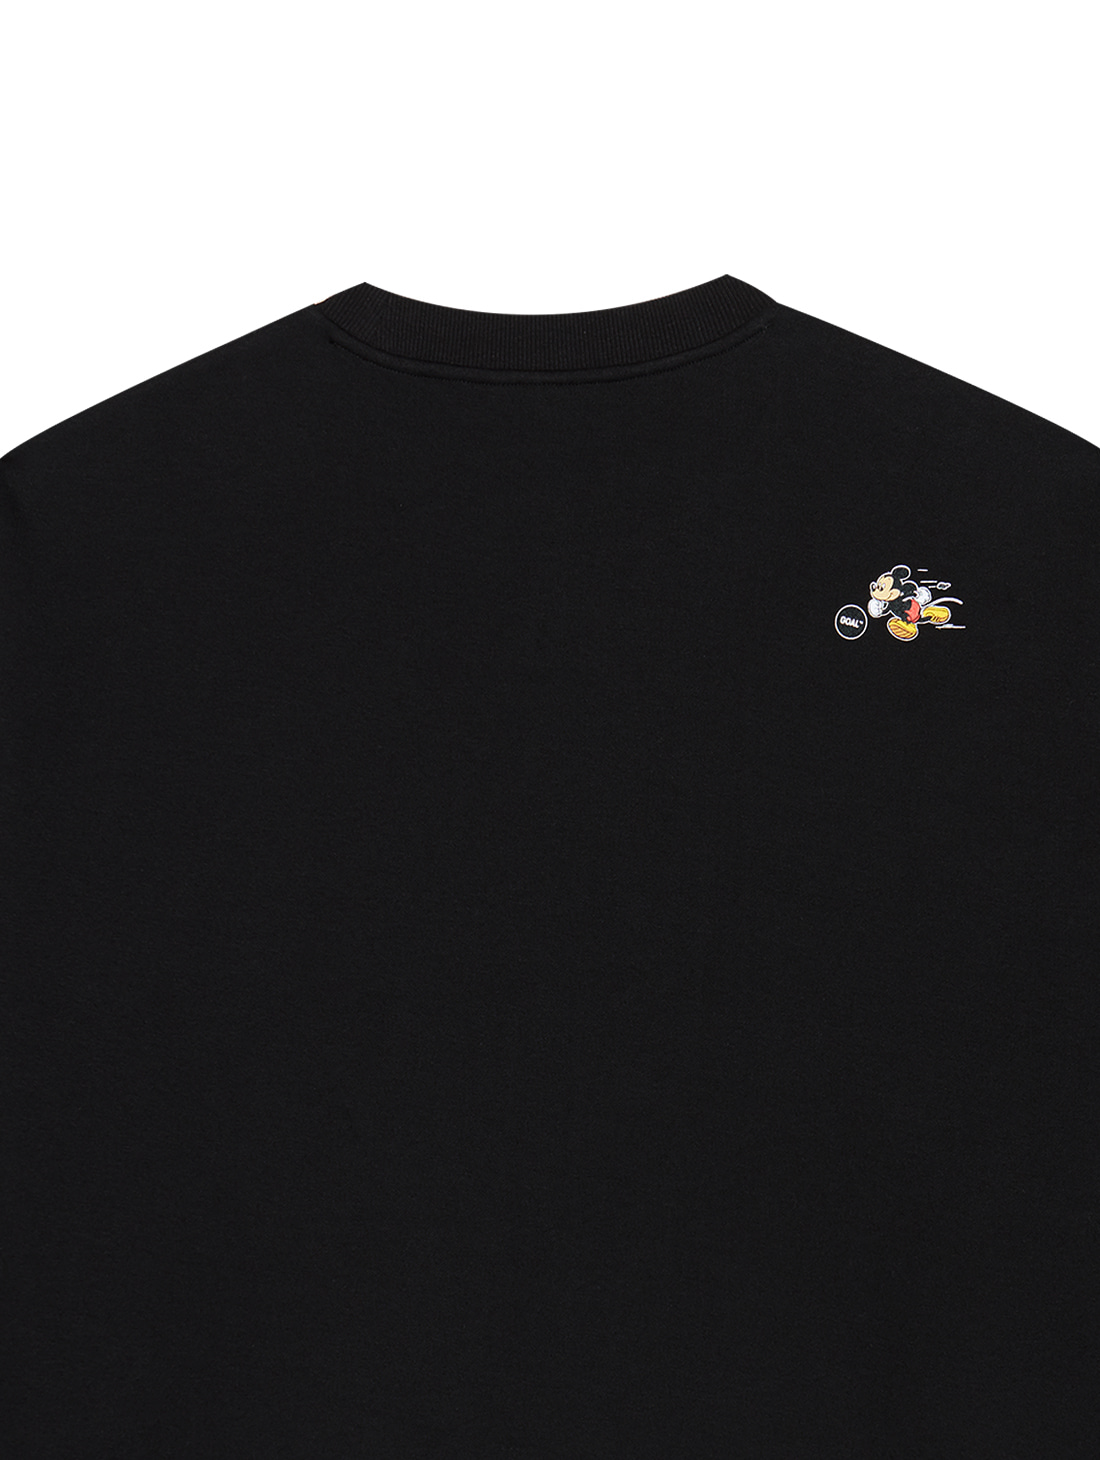 STRIKER MICKEY SWEATSHIRT - BLACK